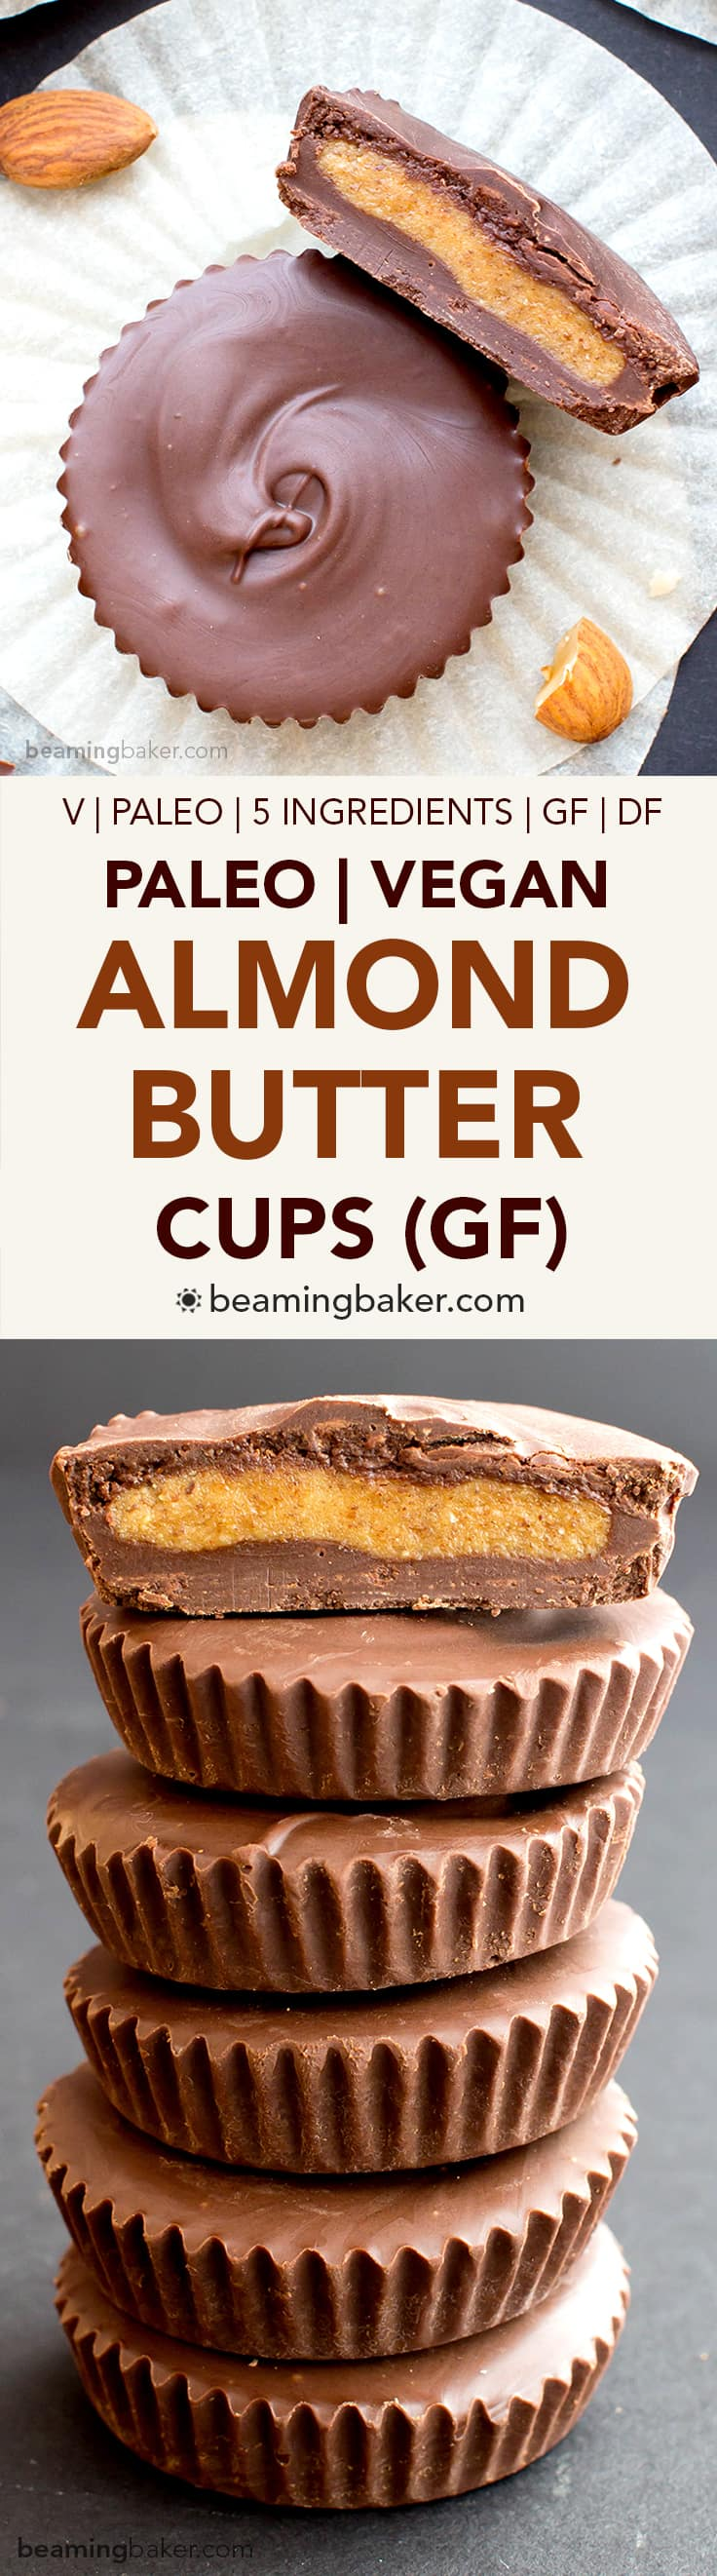 Paleo Almond Butter Cups V Gf Df A 5 Ingredient Recipe